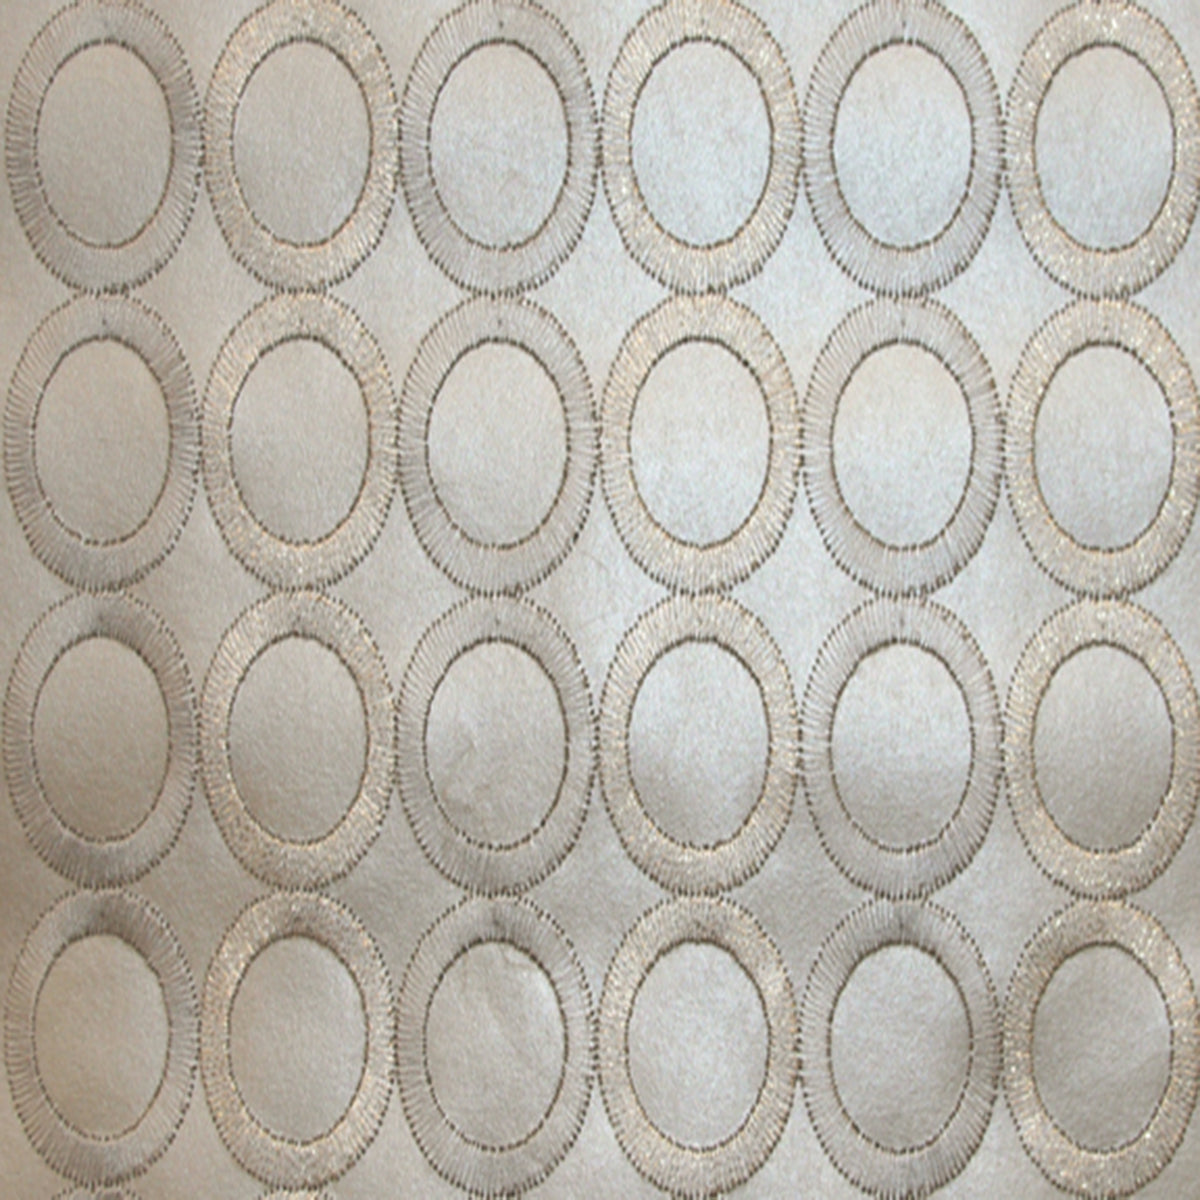 Dream On Embroidered Circles Wallpaper (Metallic)